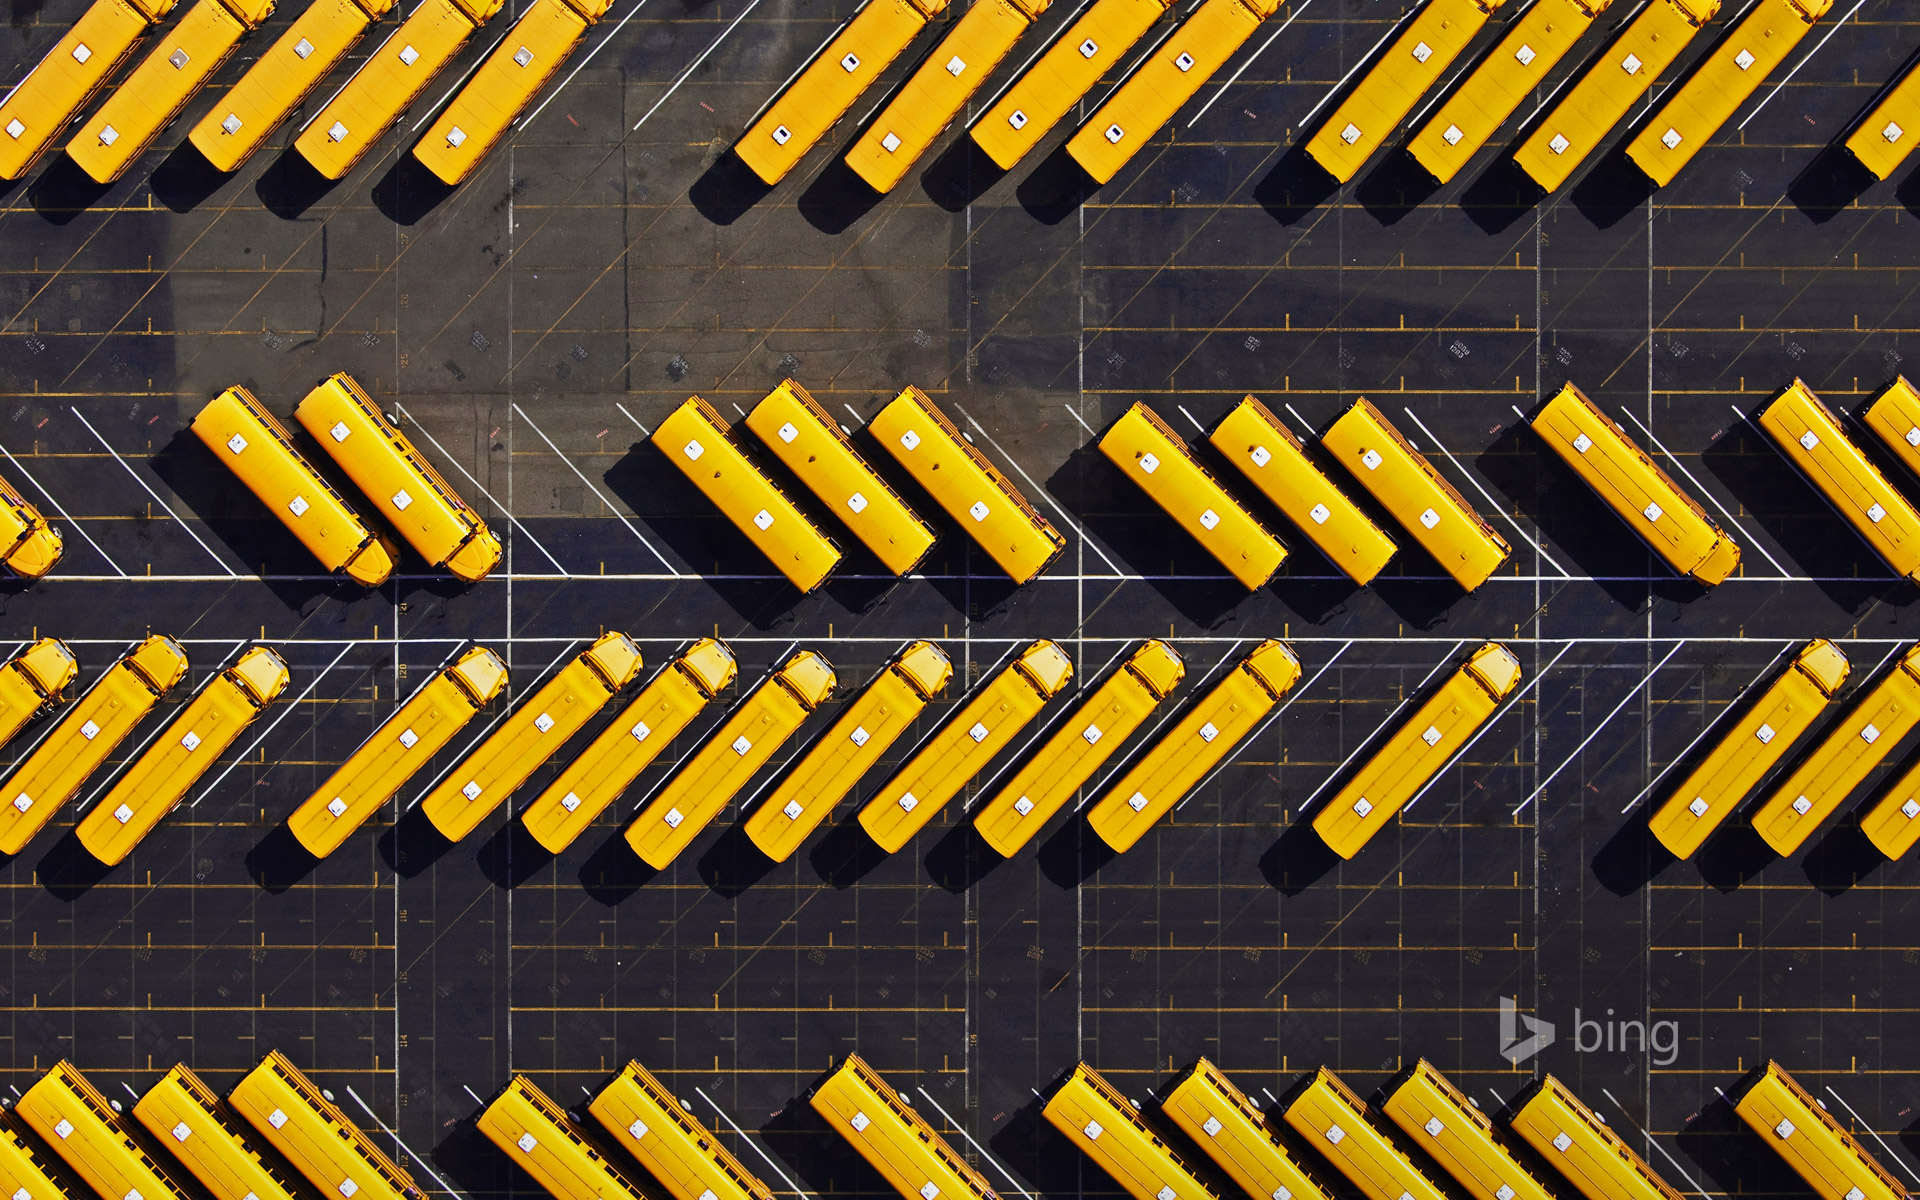 Yellow school buses parked in a lot